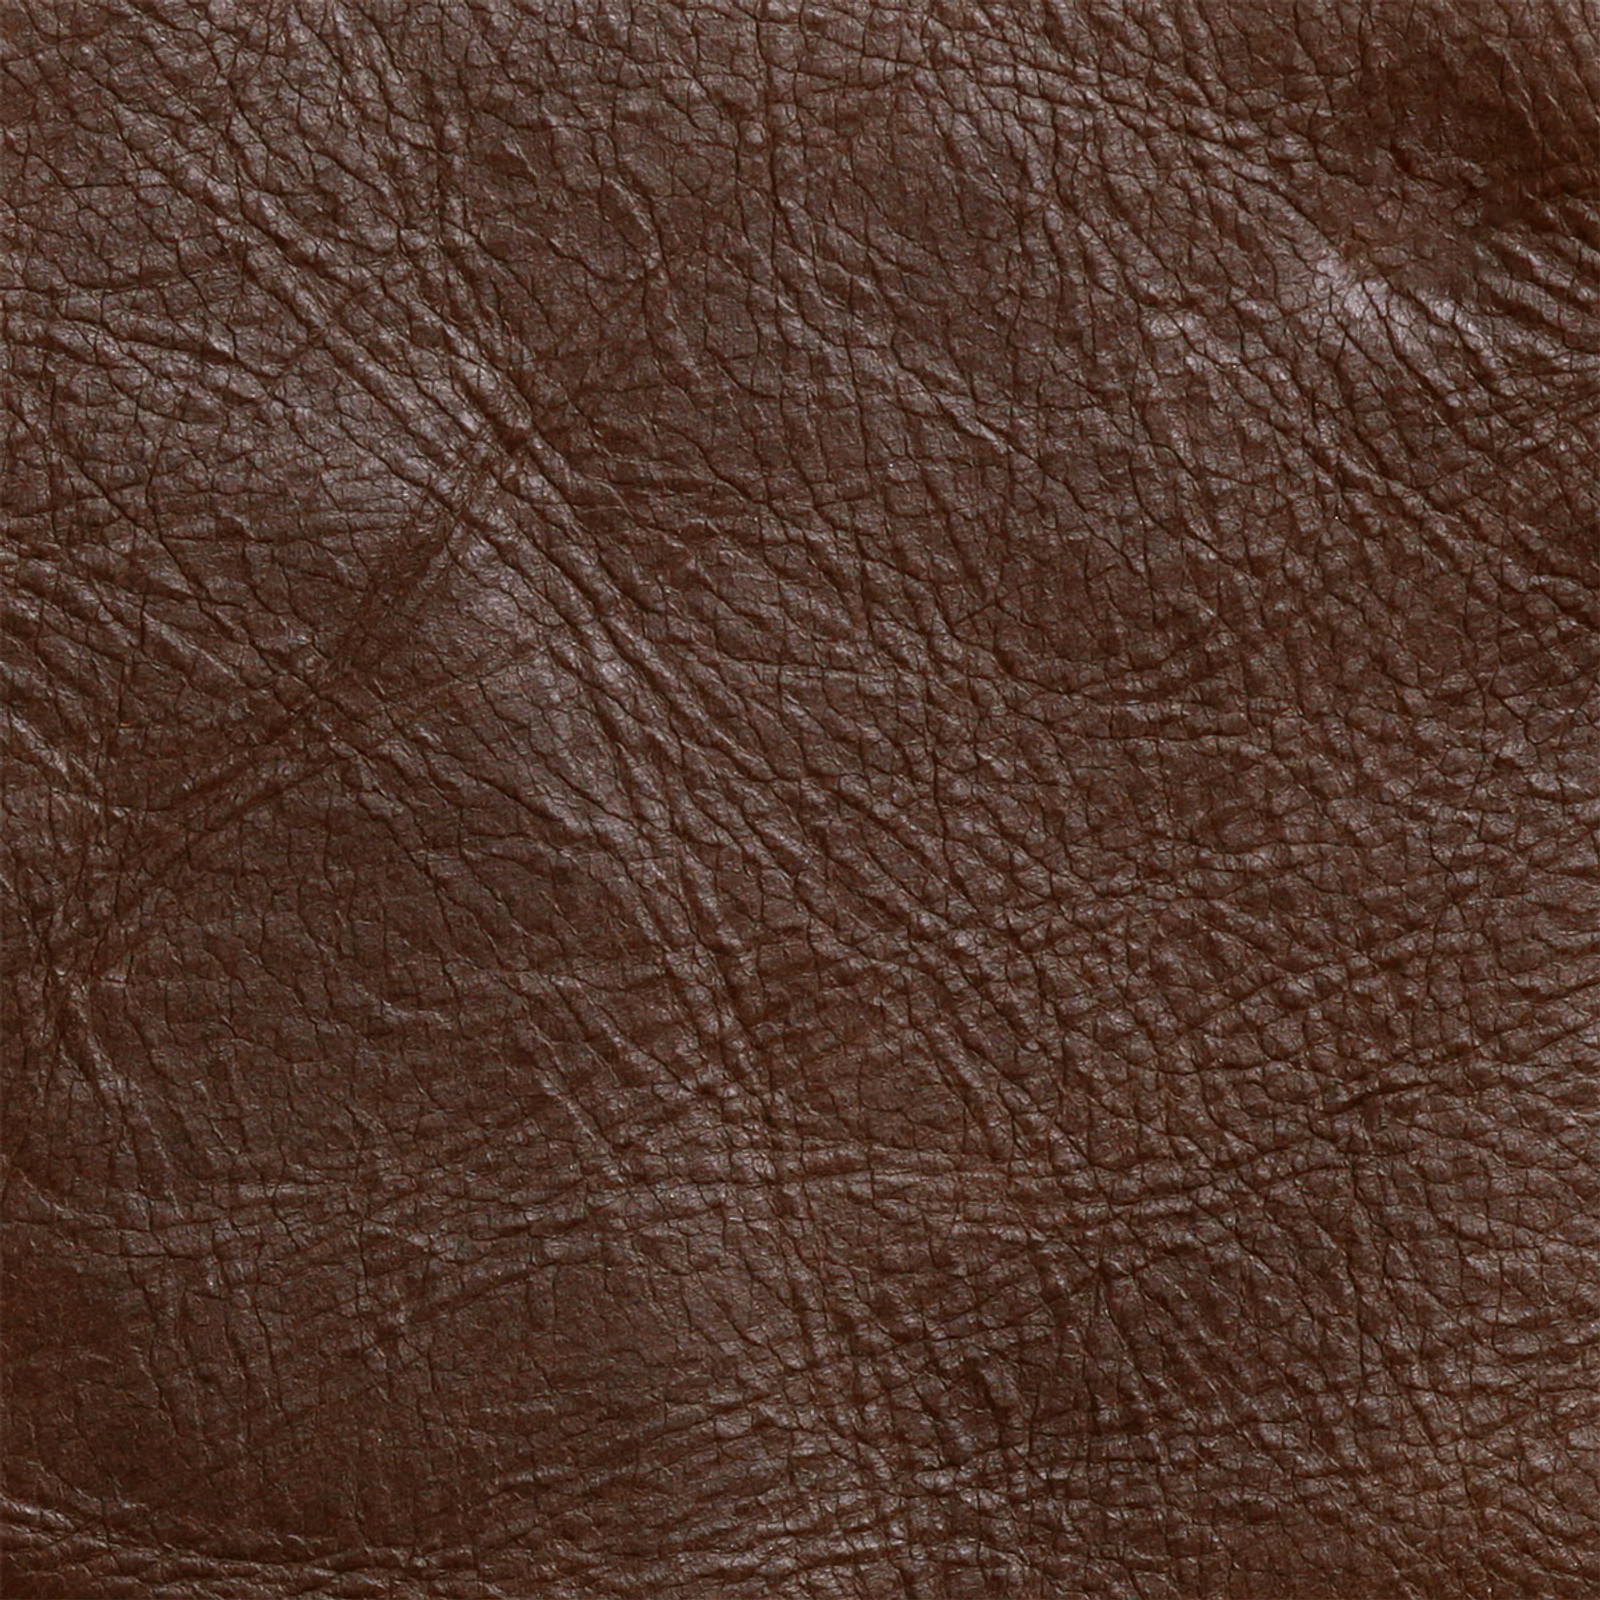 Leather, Chaps Havana Brown